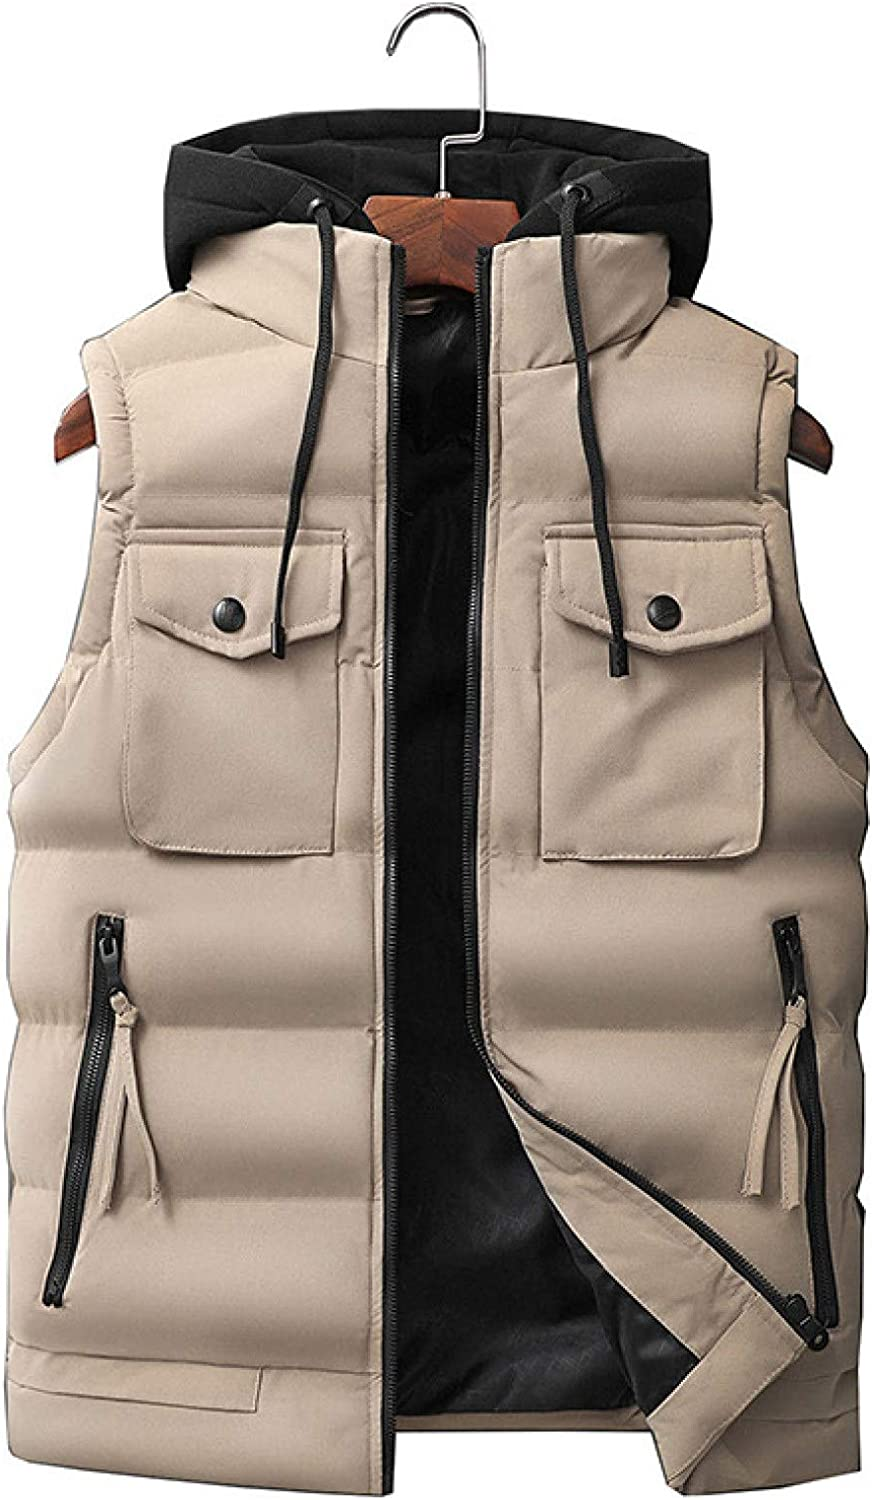 Men's Thicken Winter Vest Hooded Down Vests Removable Zipper Pocket Polyester Water Resistant Sleeveless Puffer Jacket